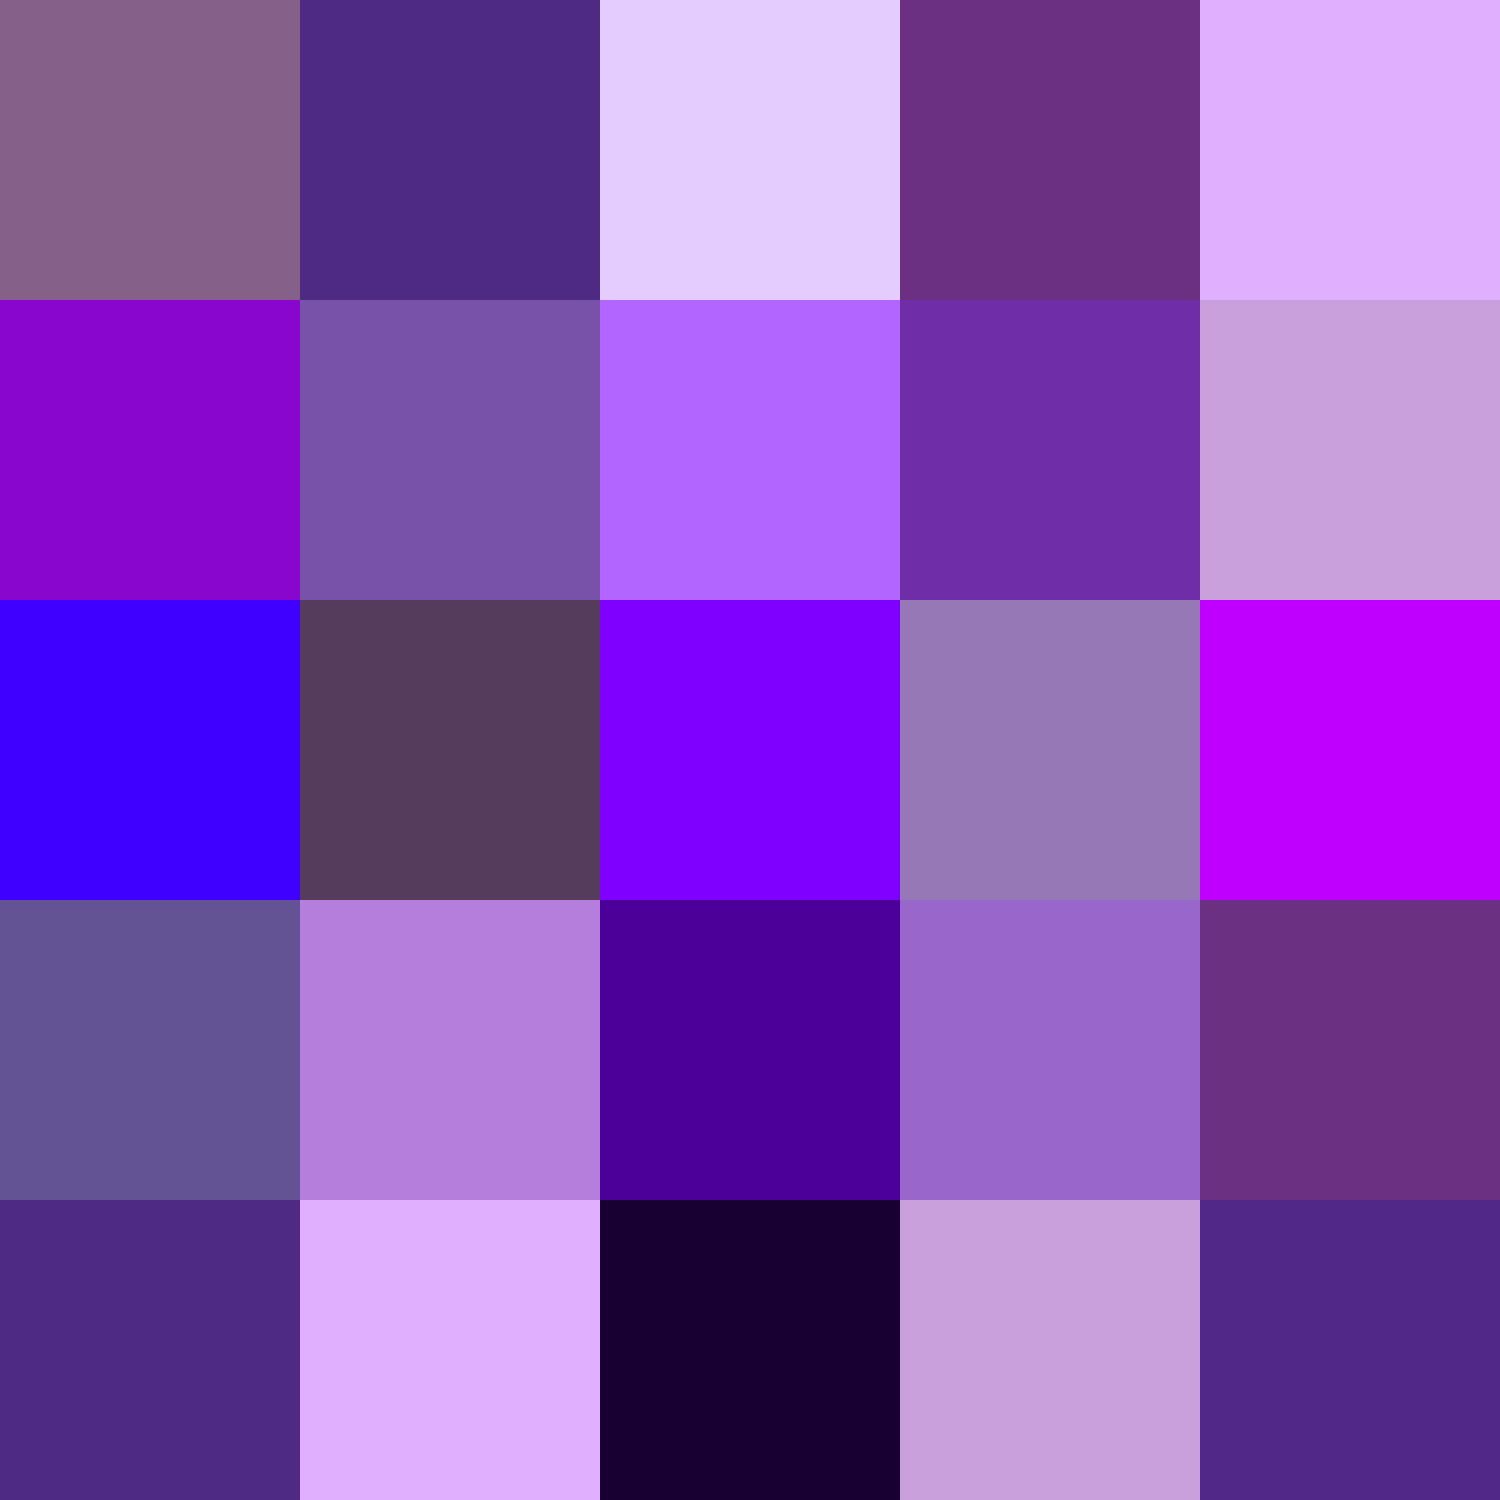 http://upload.wikimedia.org/wikipedia/commons/a/a3/Color_icon_violet.png